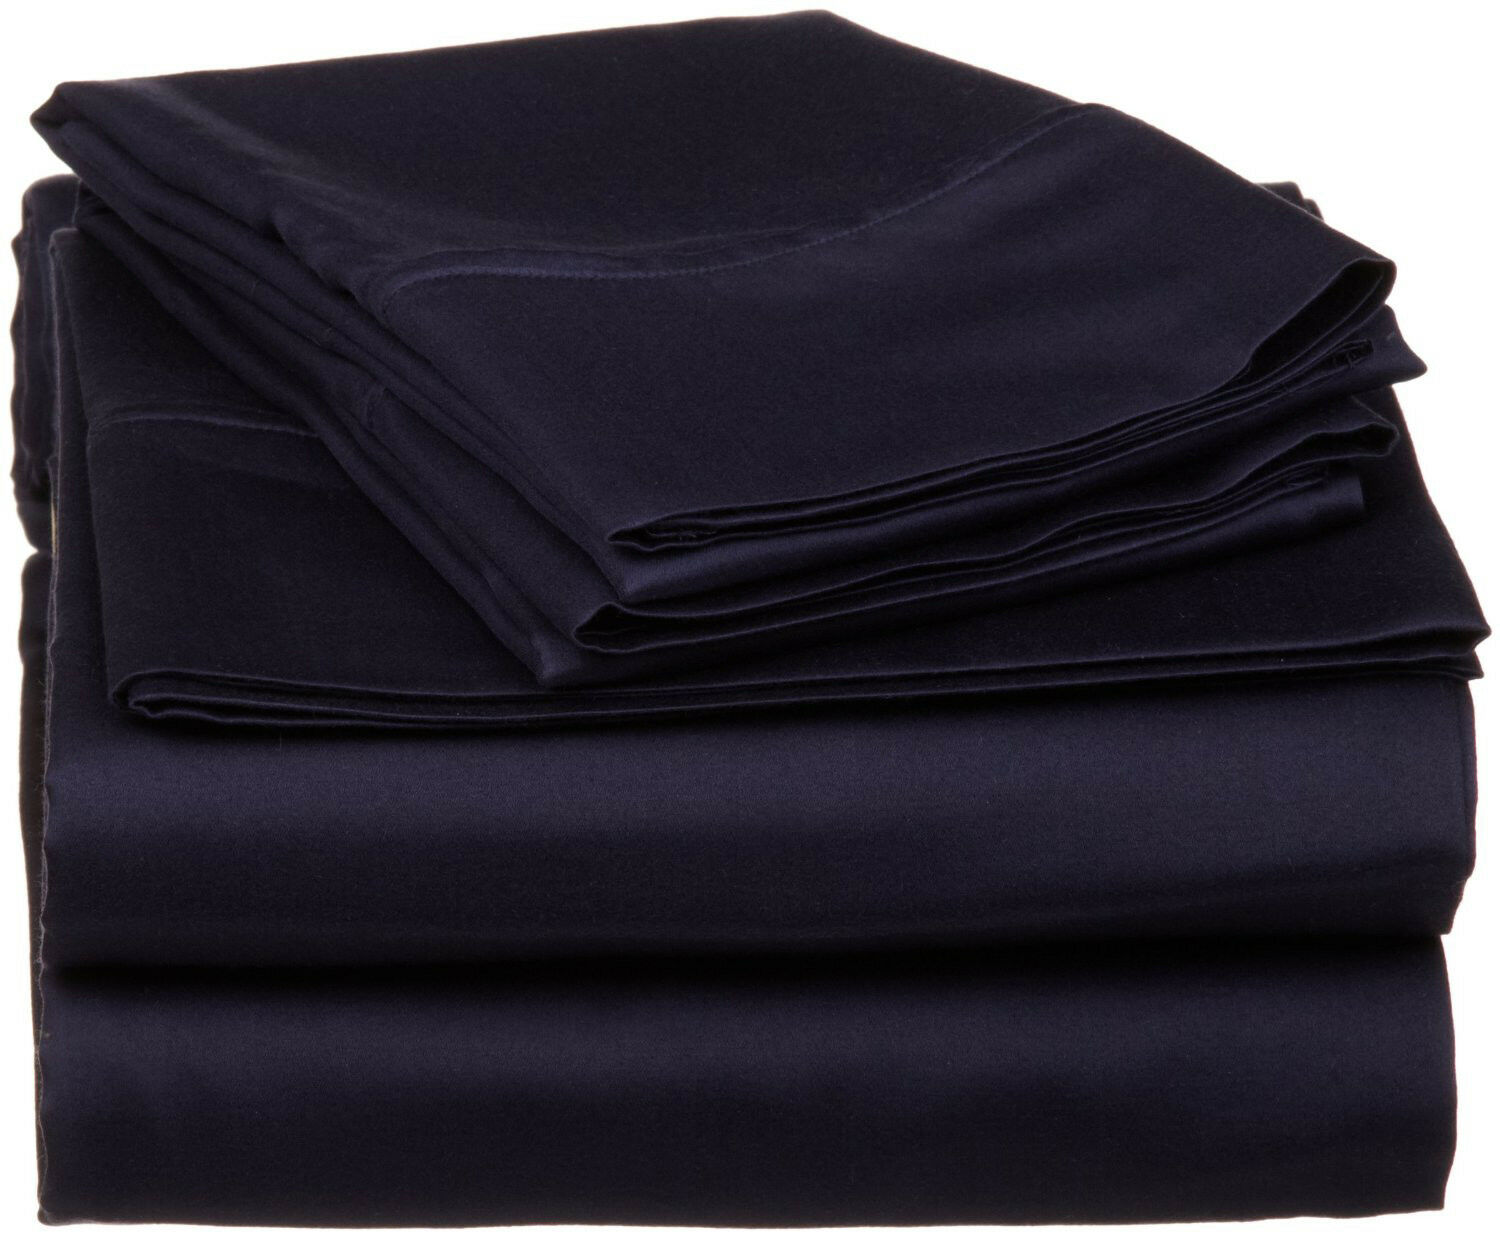 Complete Bedding Set Navy Blau Solid Choose Größes 1000 TC Egyptian Cotton